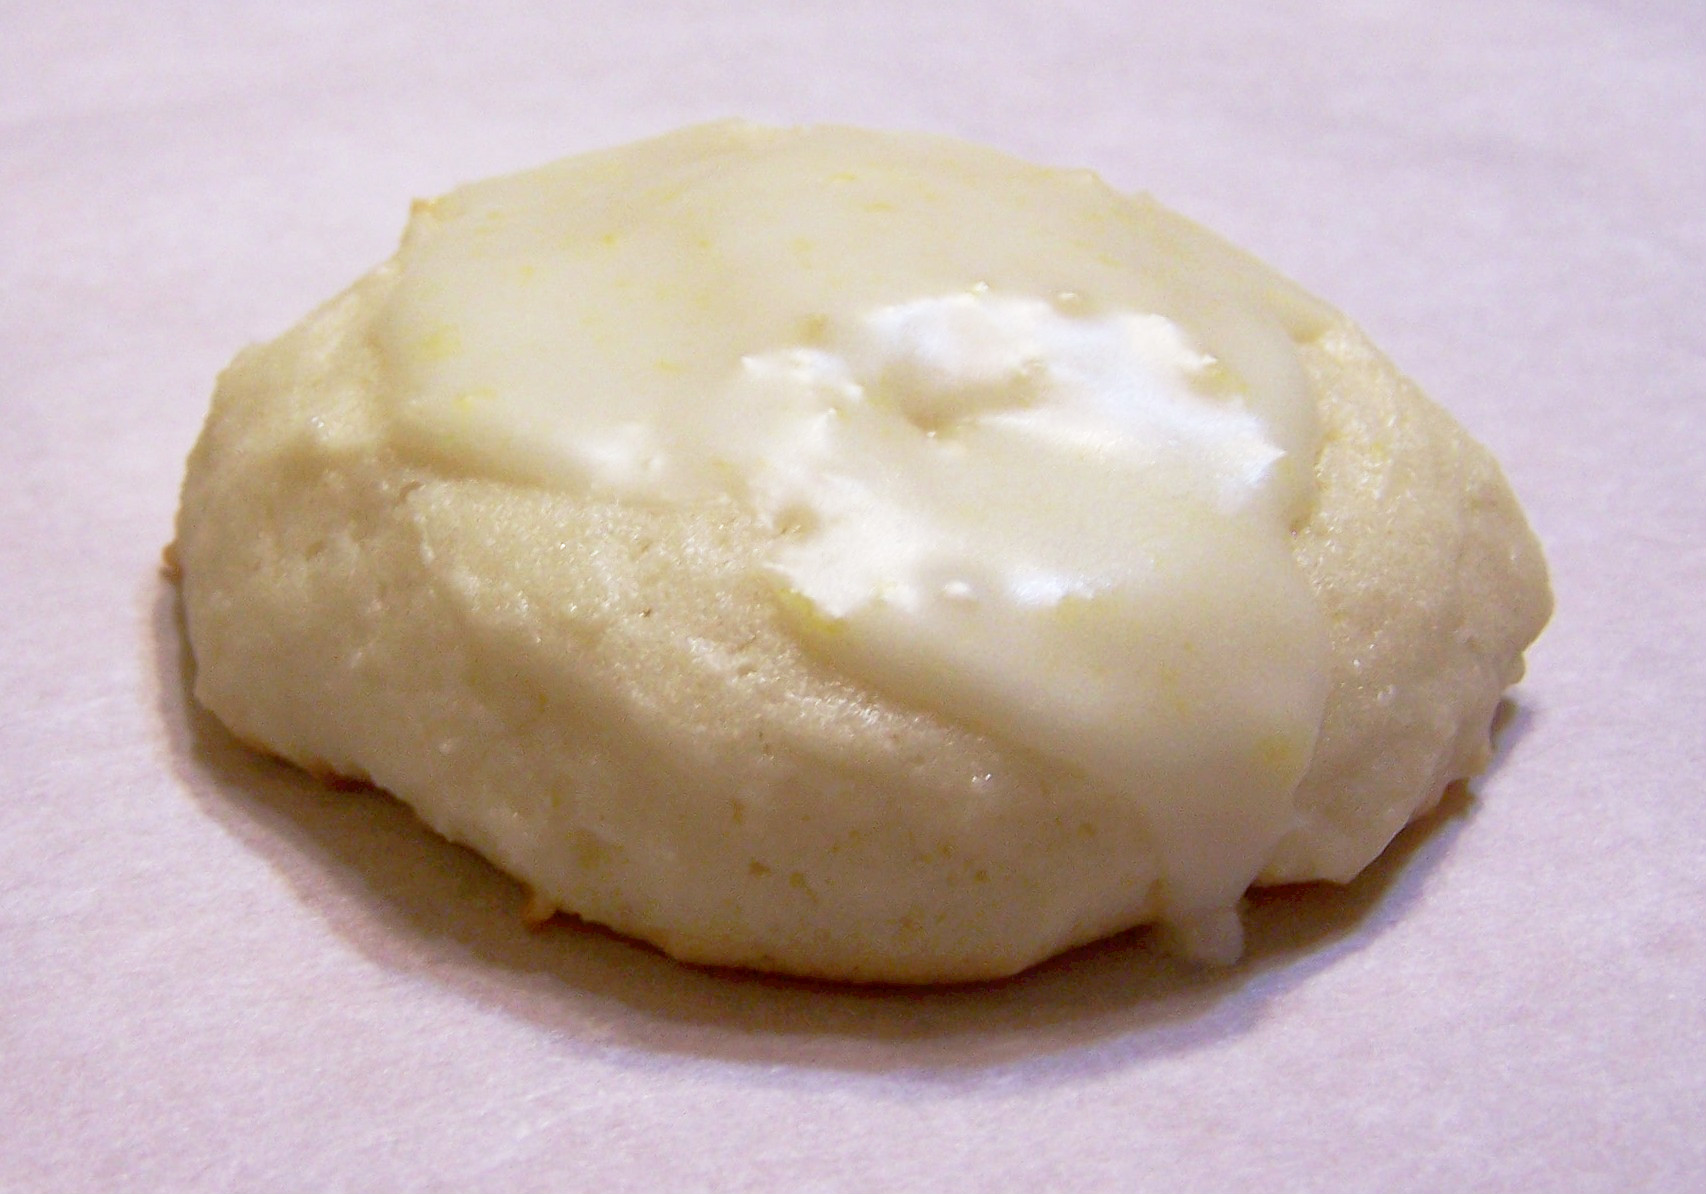 ... cookie cookies dessert food glazed lemon cookie lemon ricotta cookies